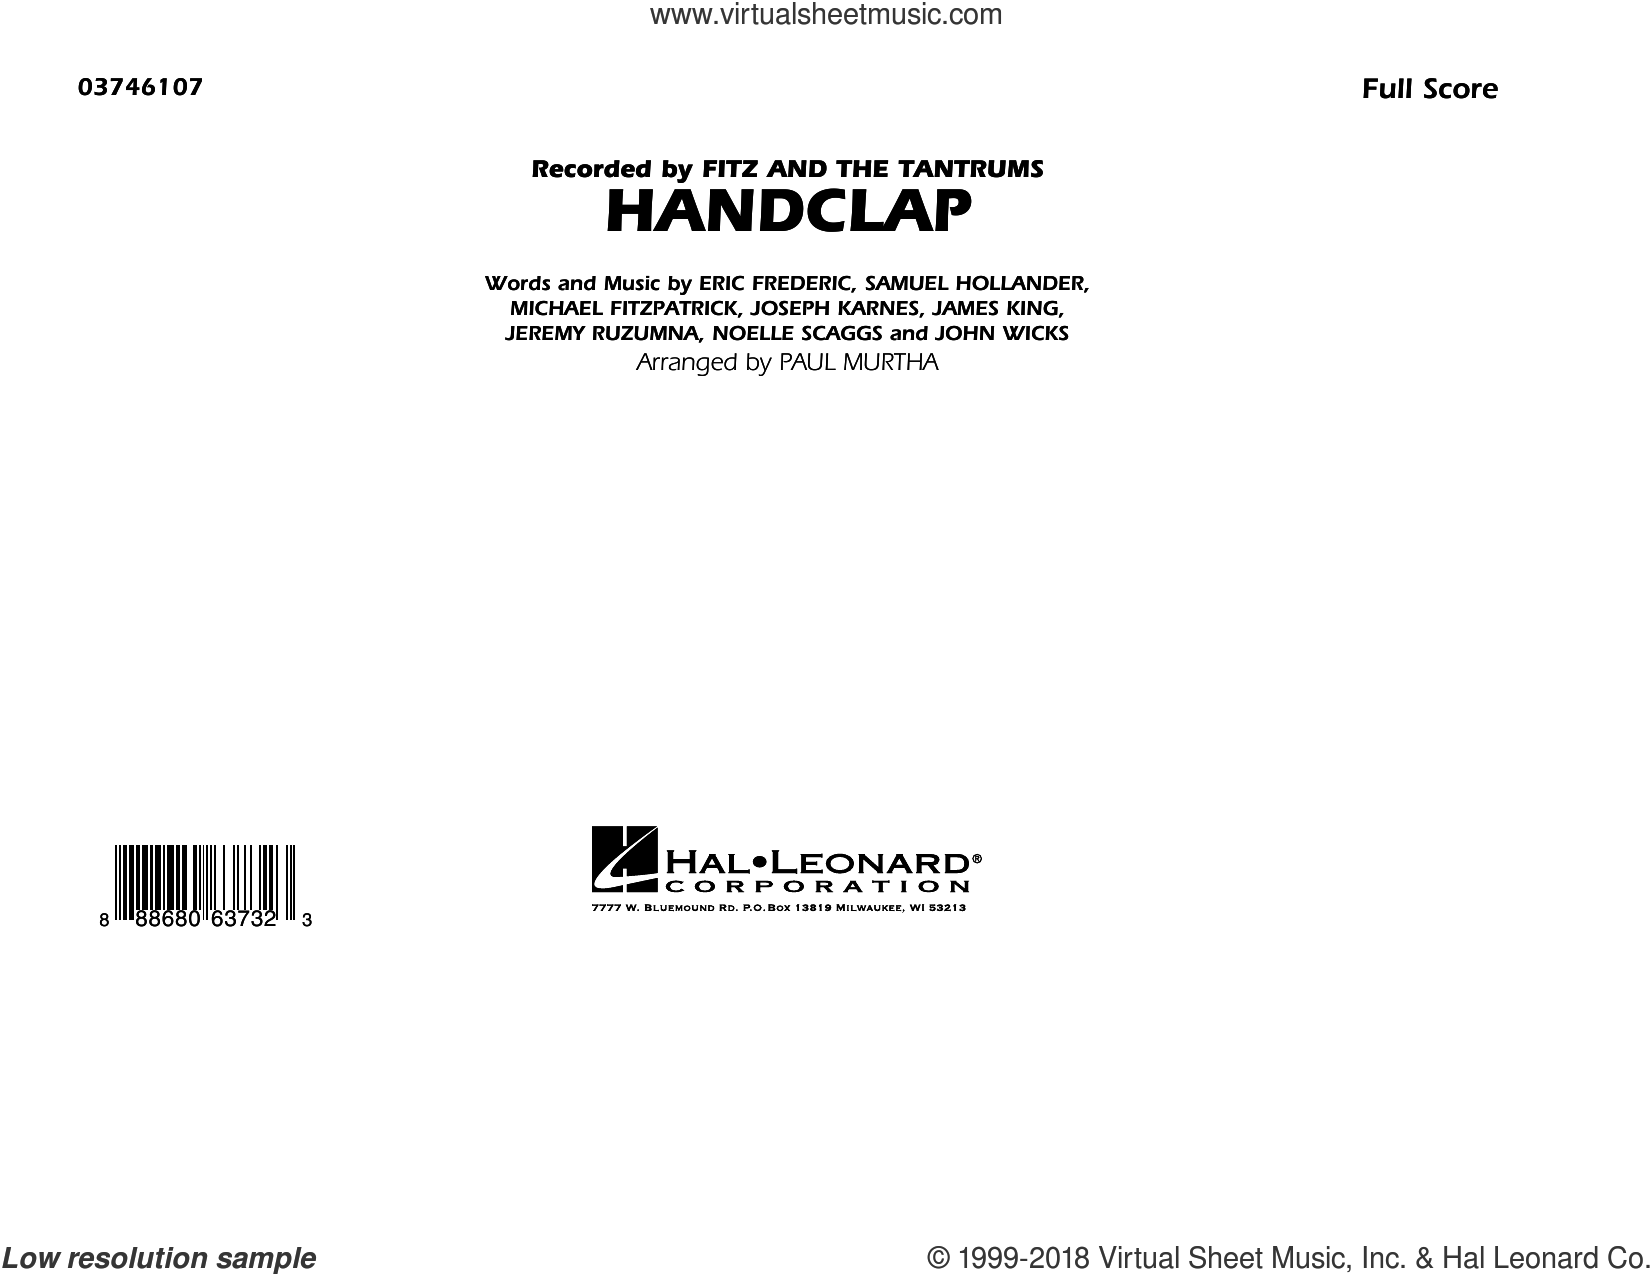 HandClap (COMPLETE) sheet music for marching band by Paul Murtha, Eric Frederic, Fitz And The Tantrums, James King, Jeremy Ruzumna, John Wicks, Joseph Karnes, Michael Fitzpatrick, Noelle Scaggs and Sam Hollander, intermediate skill level